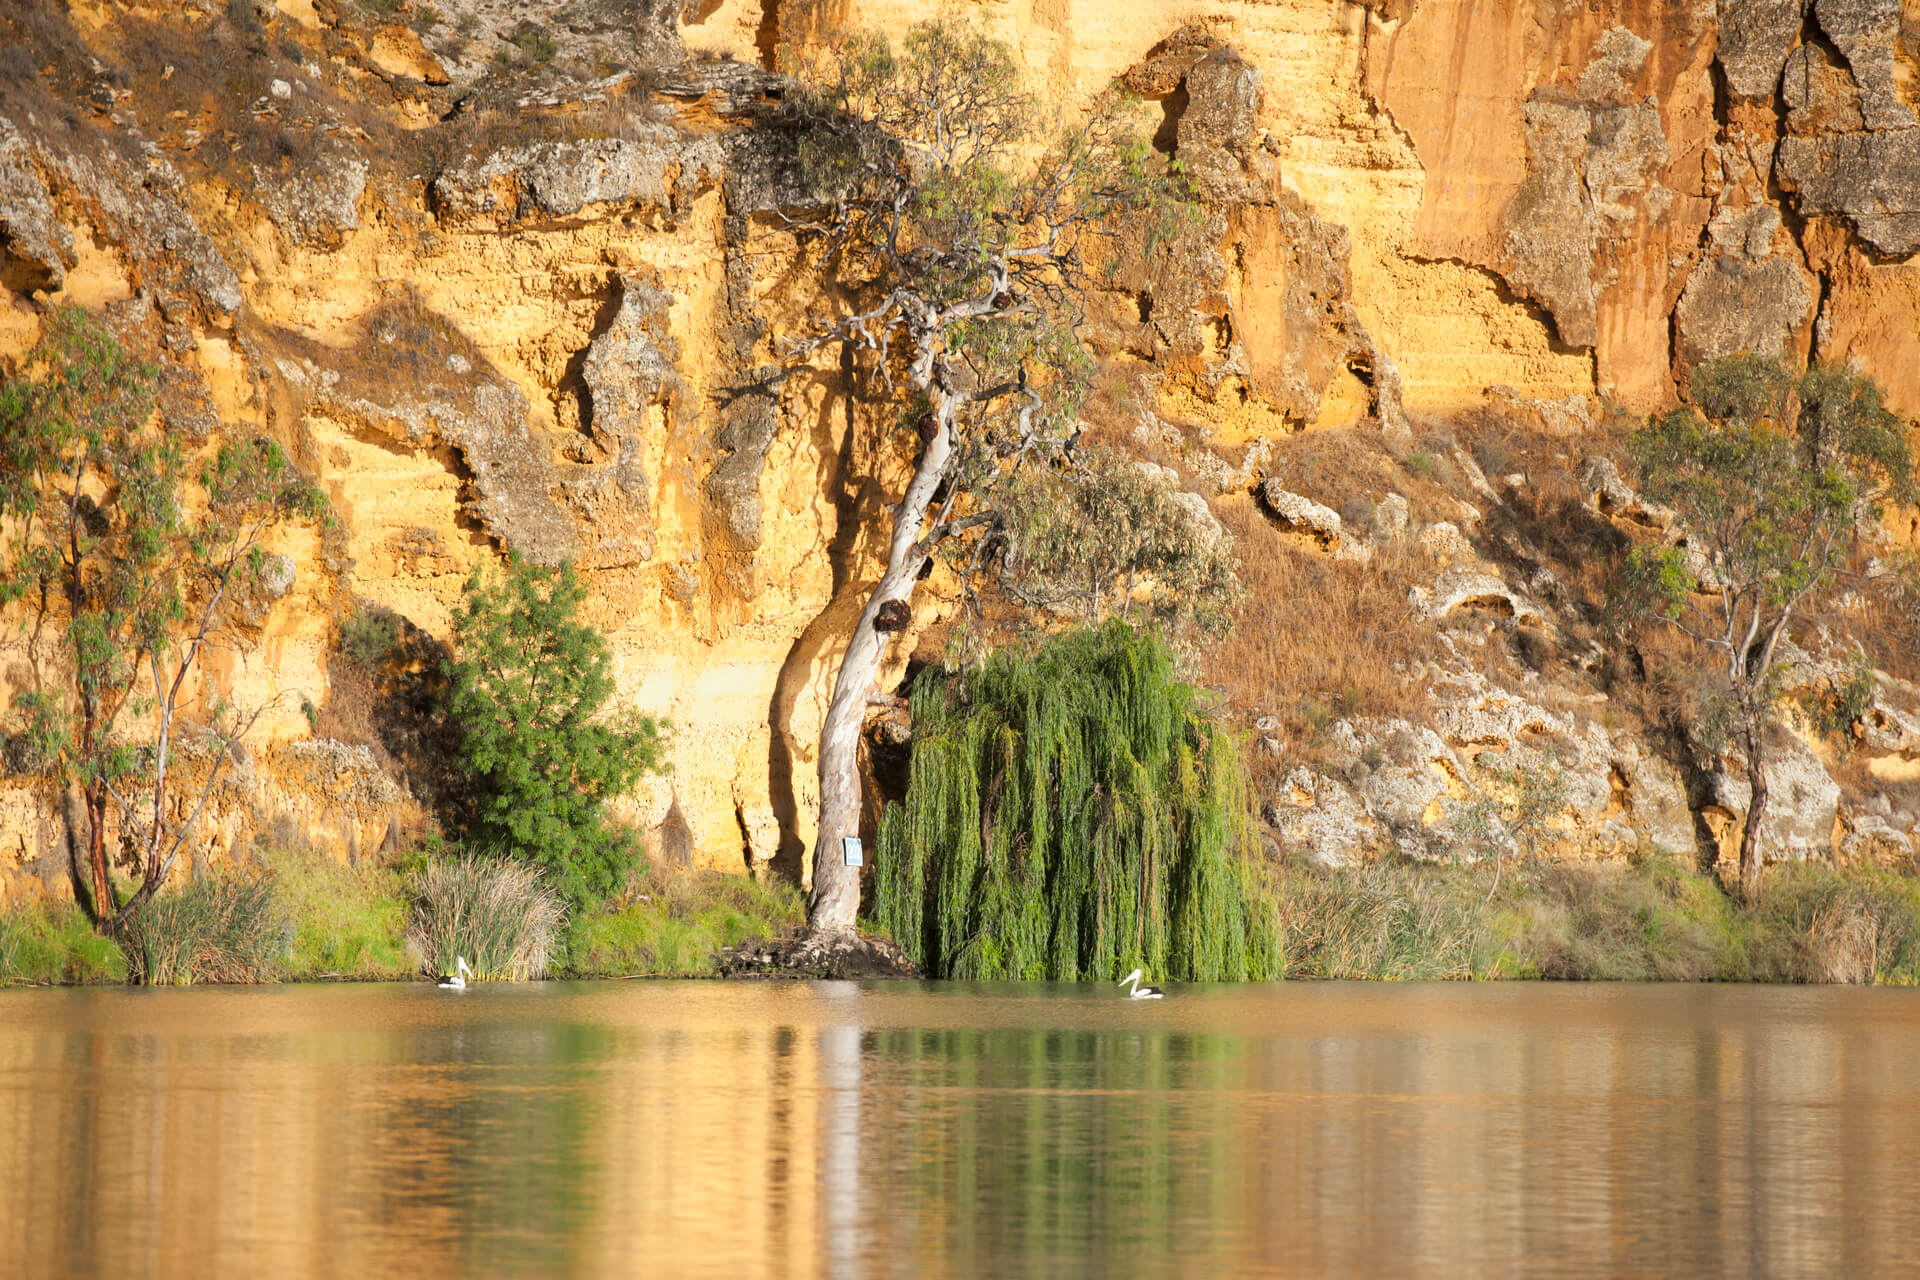 Cliffs and tree on the banks of the Murray River